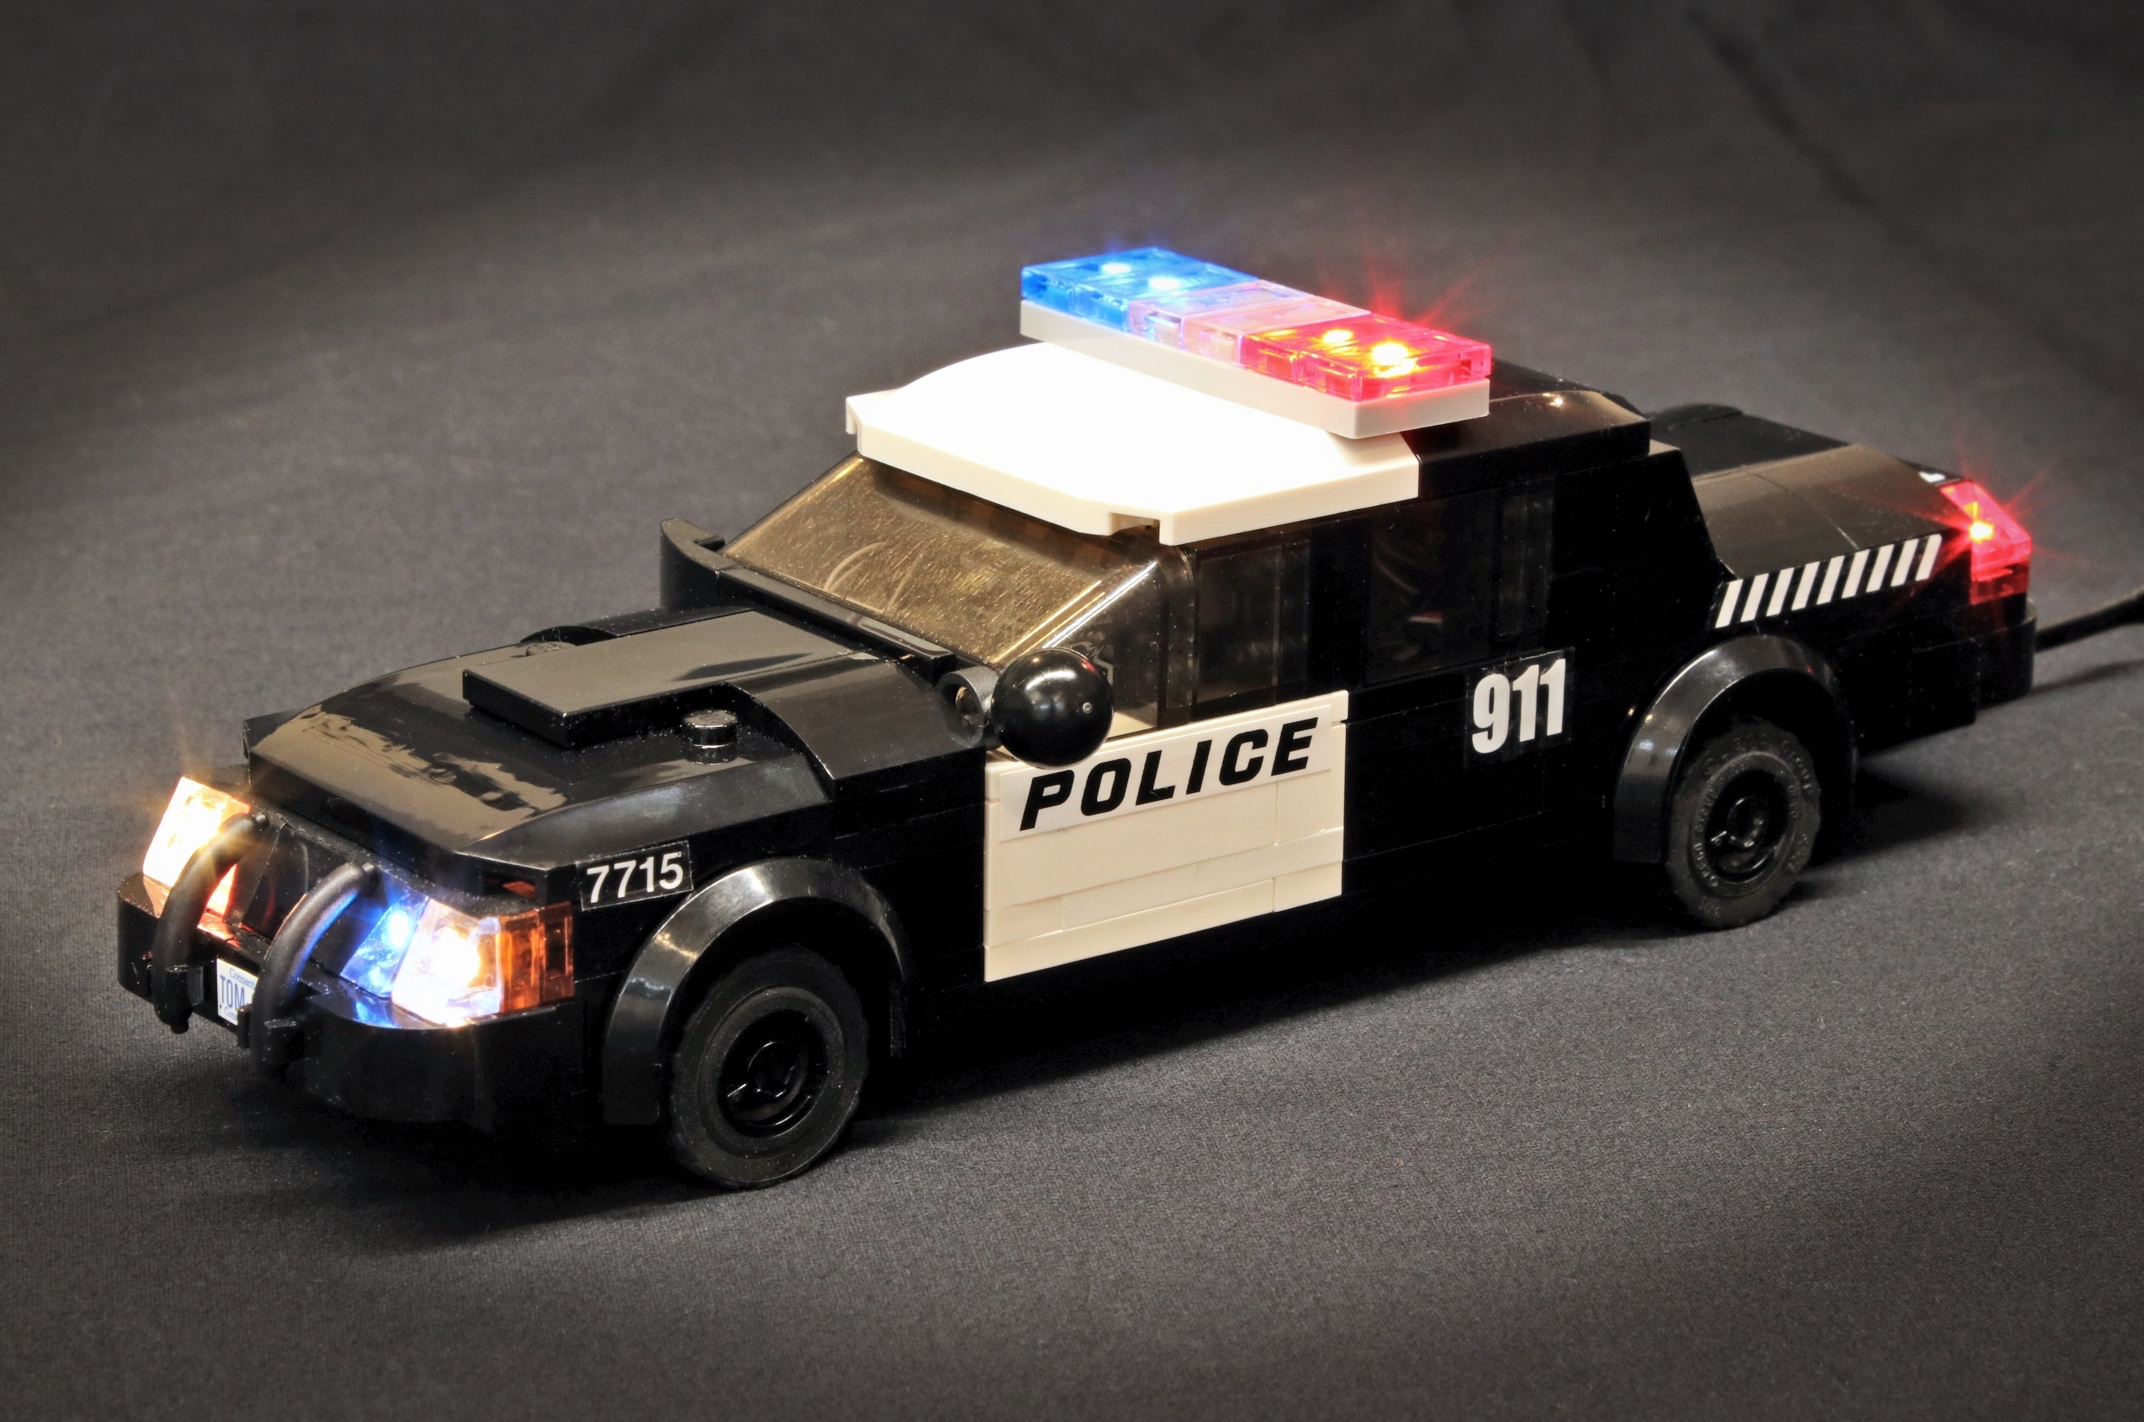 Blog Analog Converter Circuit Additionally Led Alternating Light Flasher The Pfx Brick Has A Wide Portfolio Of Emergency Vehicle Effects There Are Nearly 40 Different Sequences Each With Flash